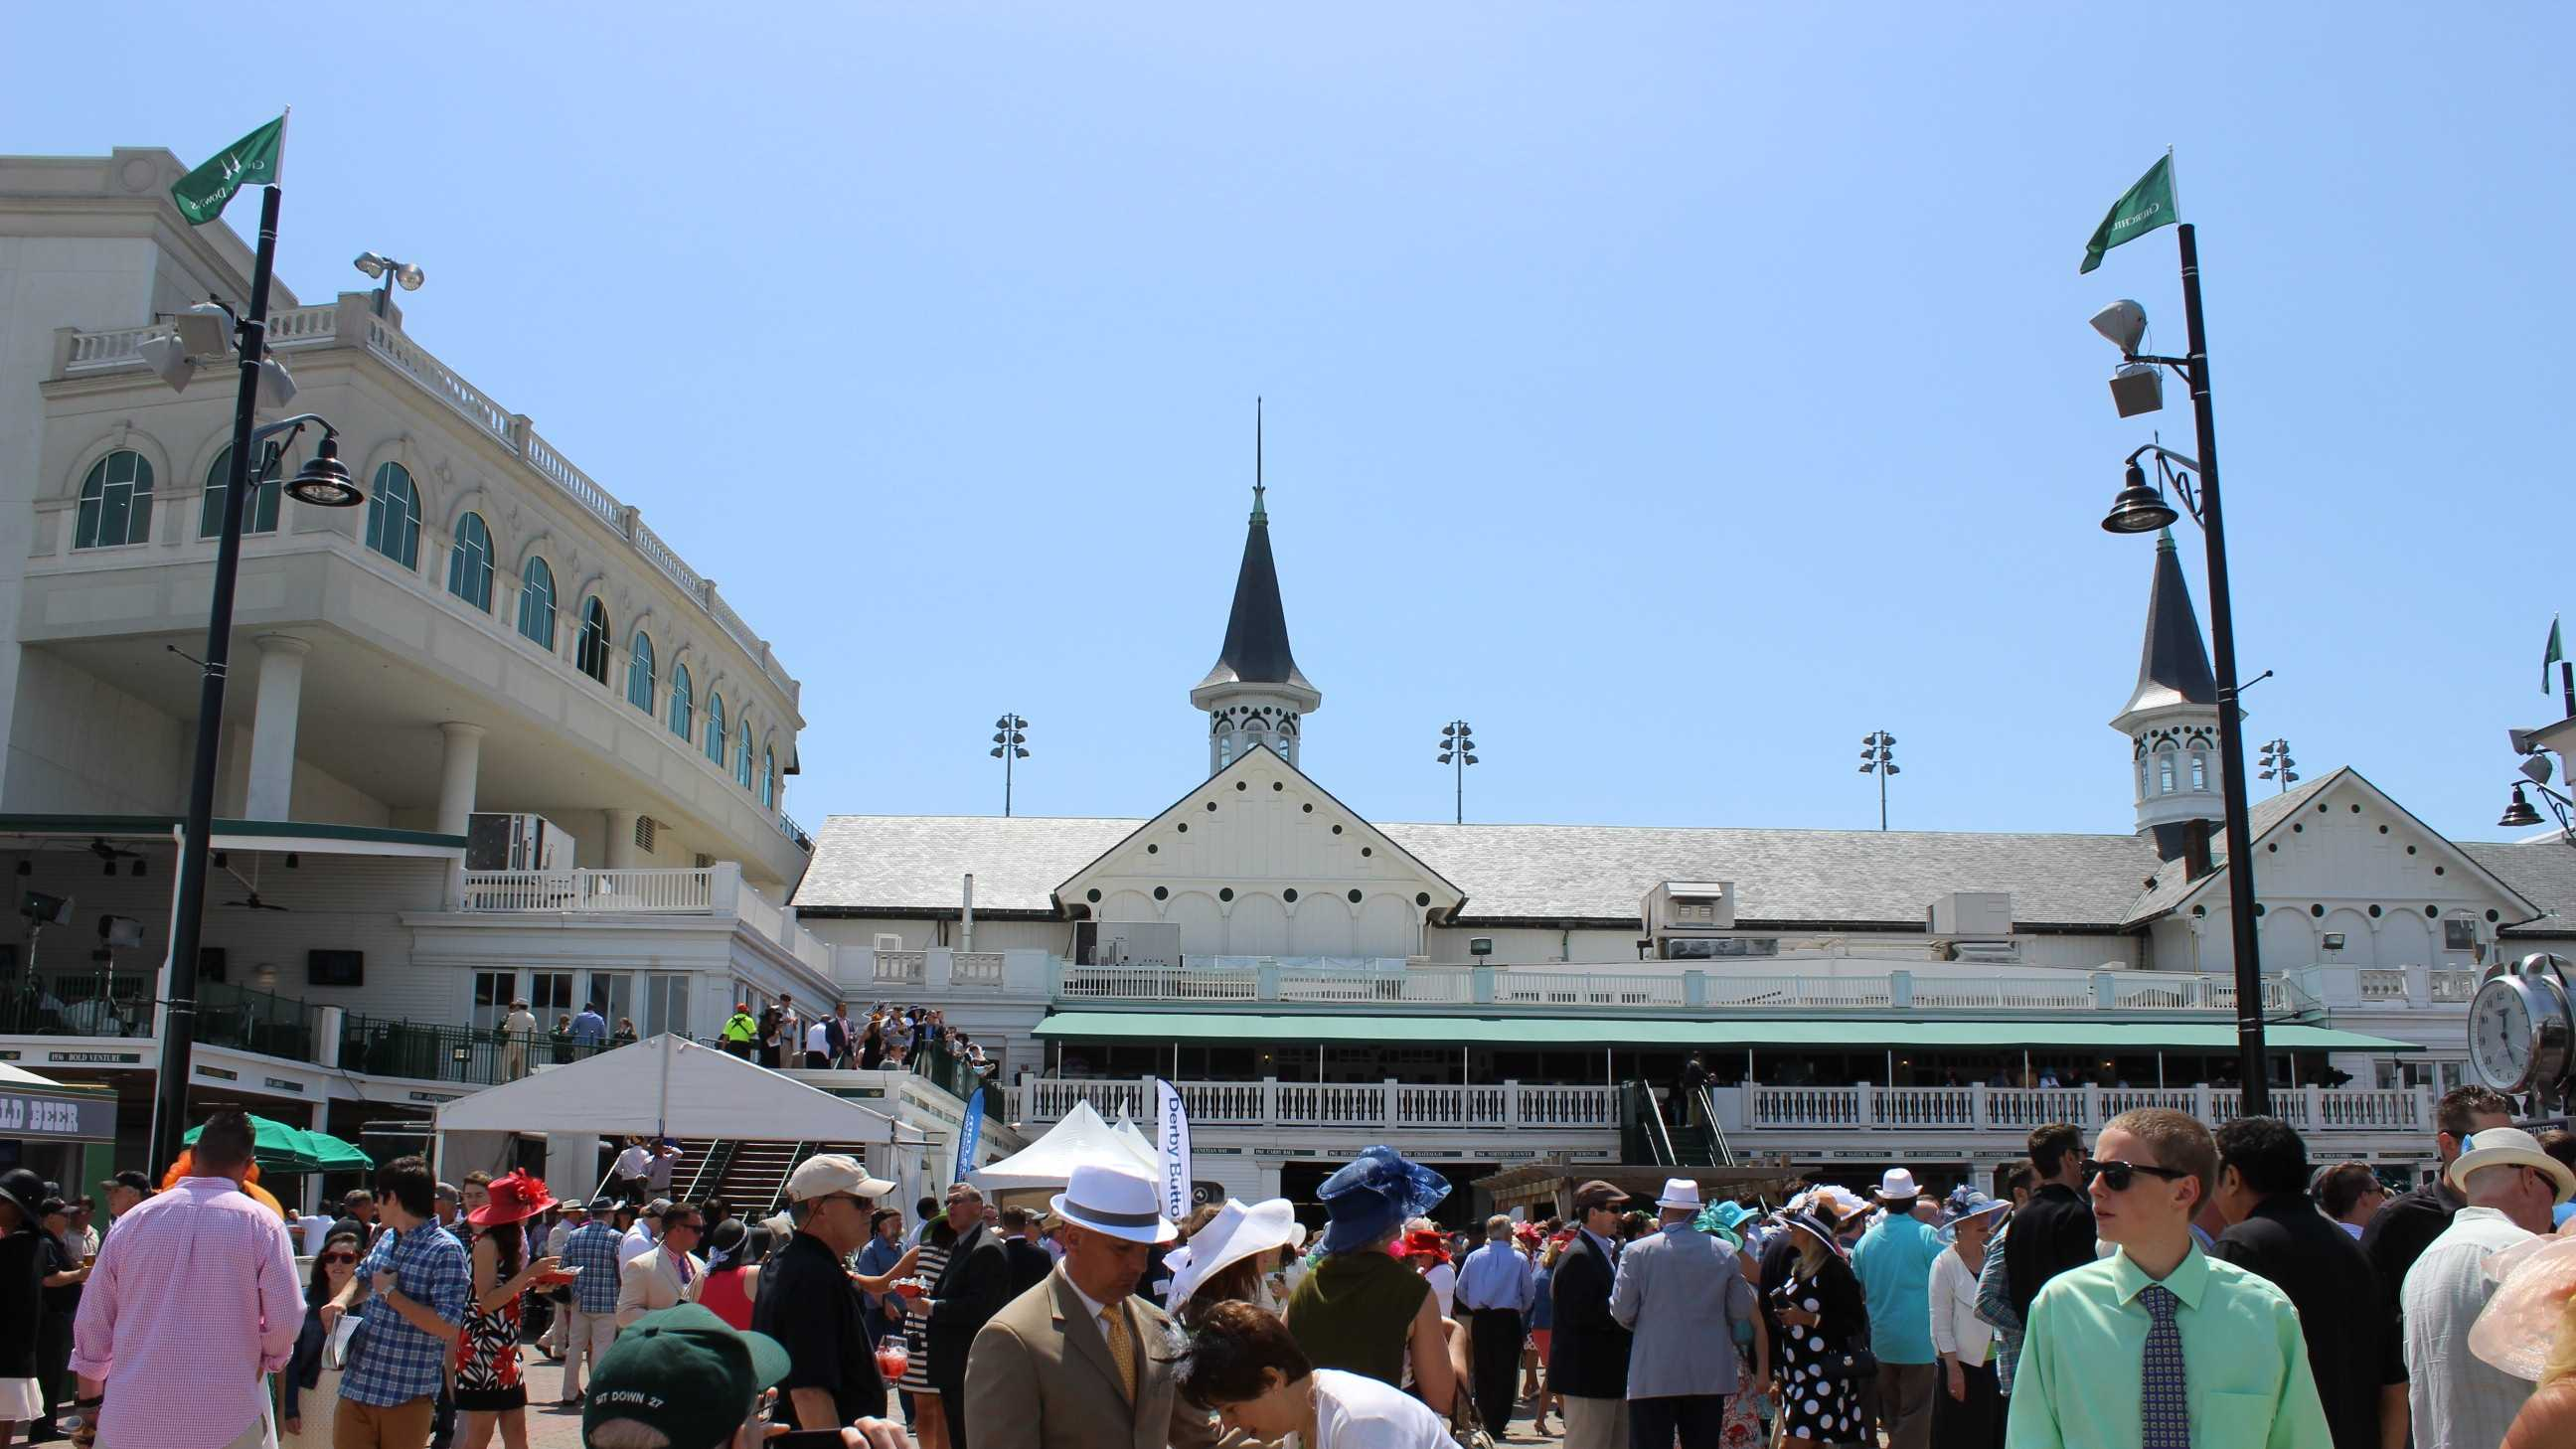 Kentucky Derby 140 images (4).JPG